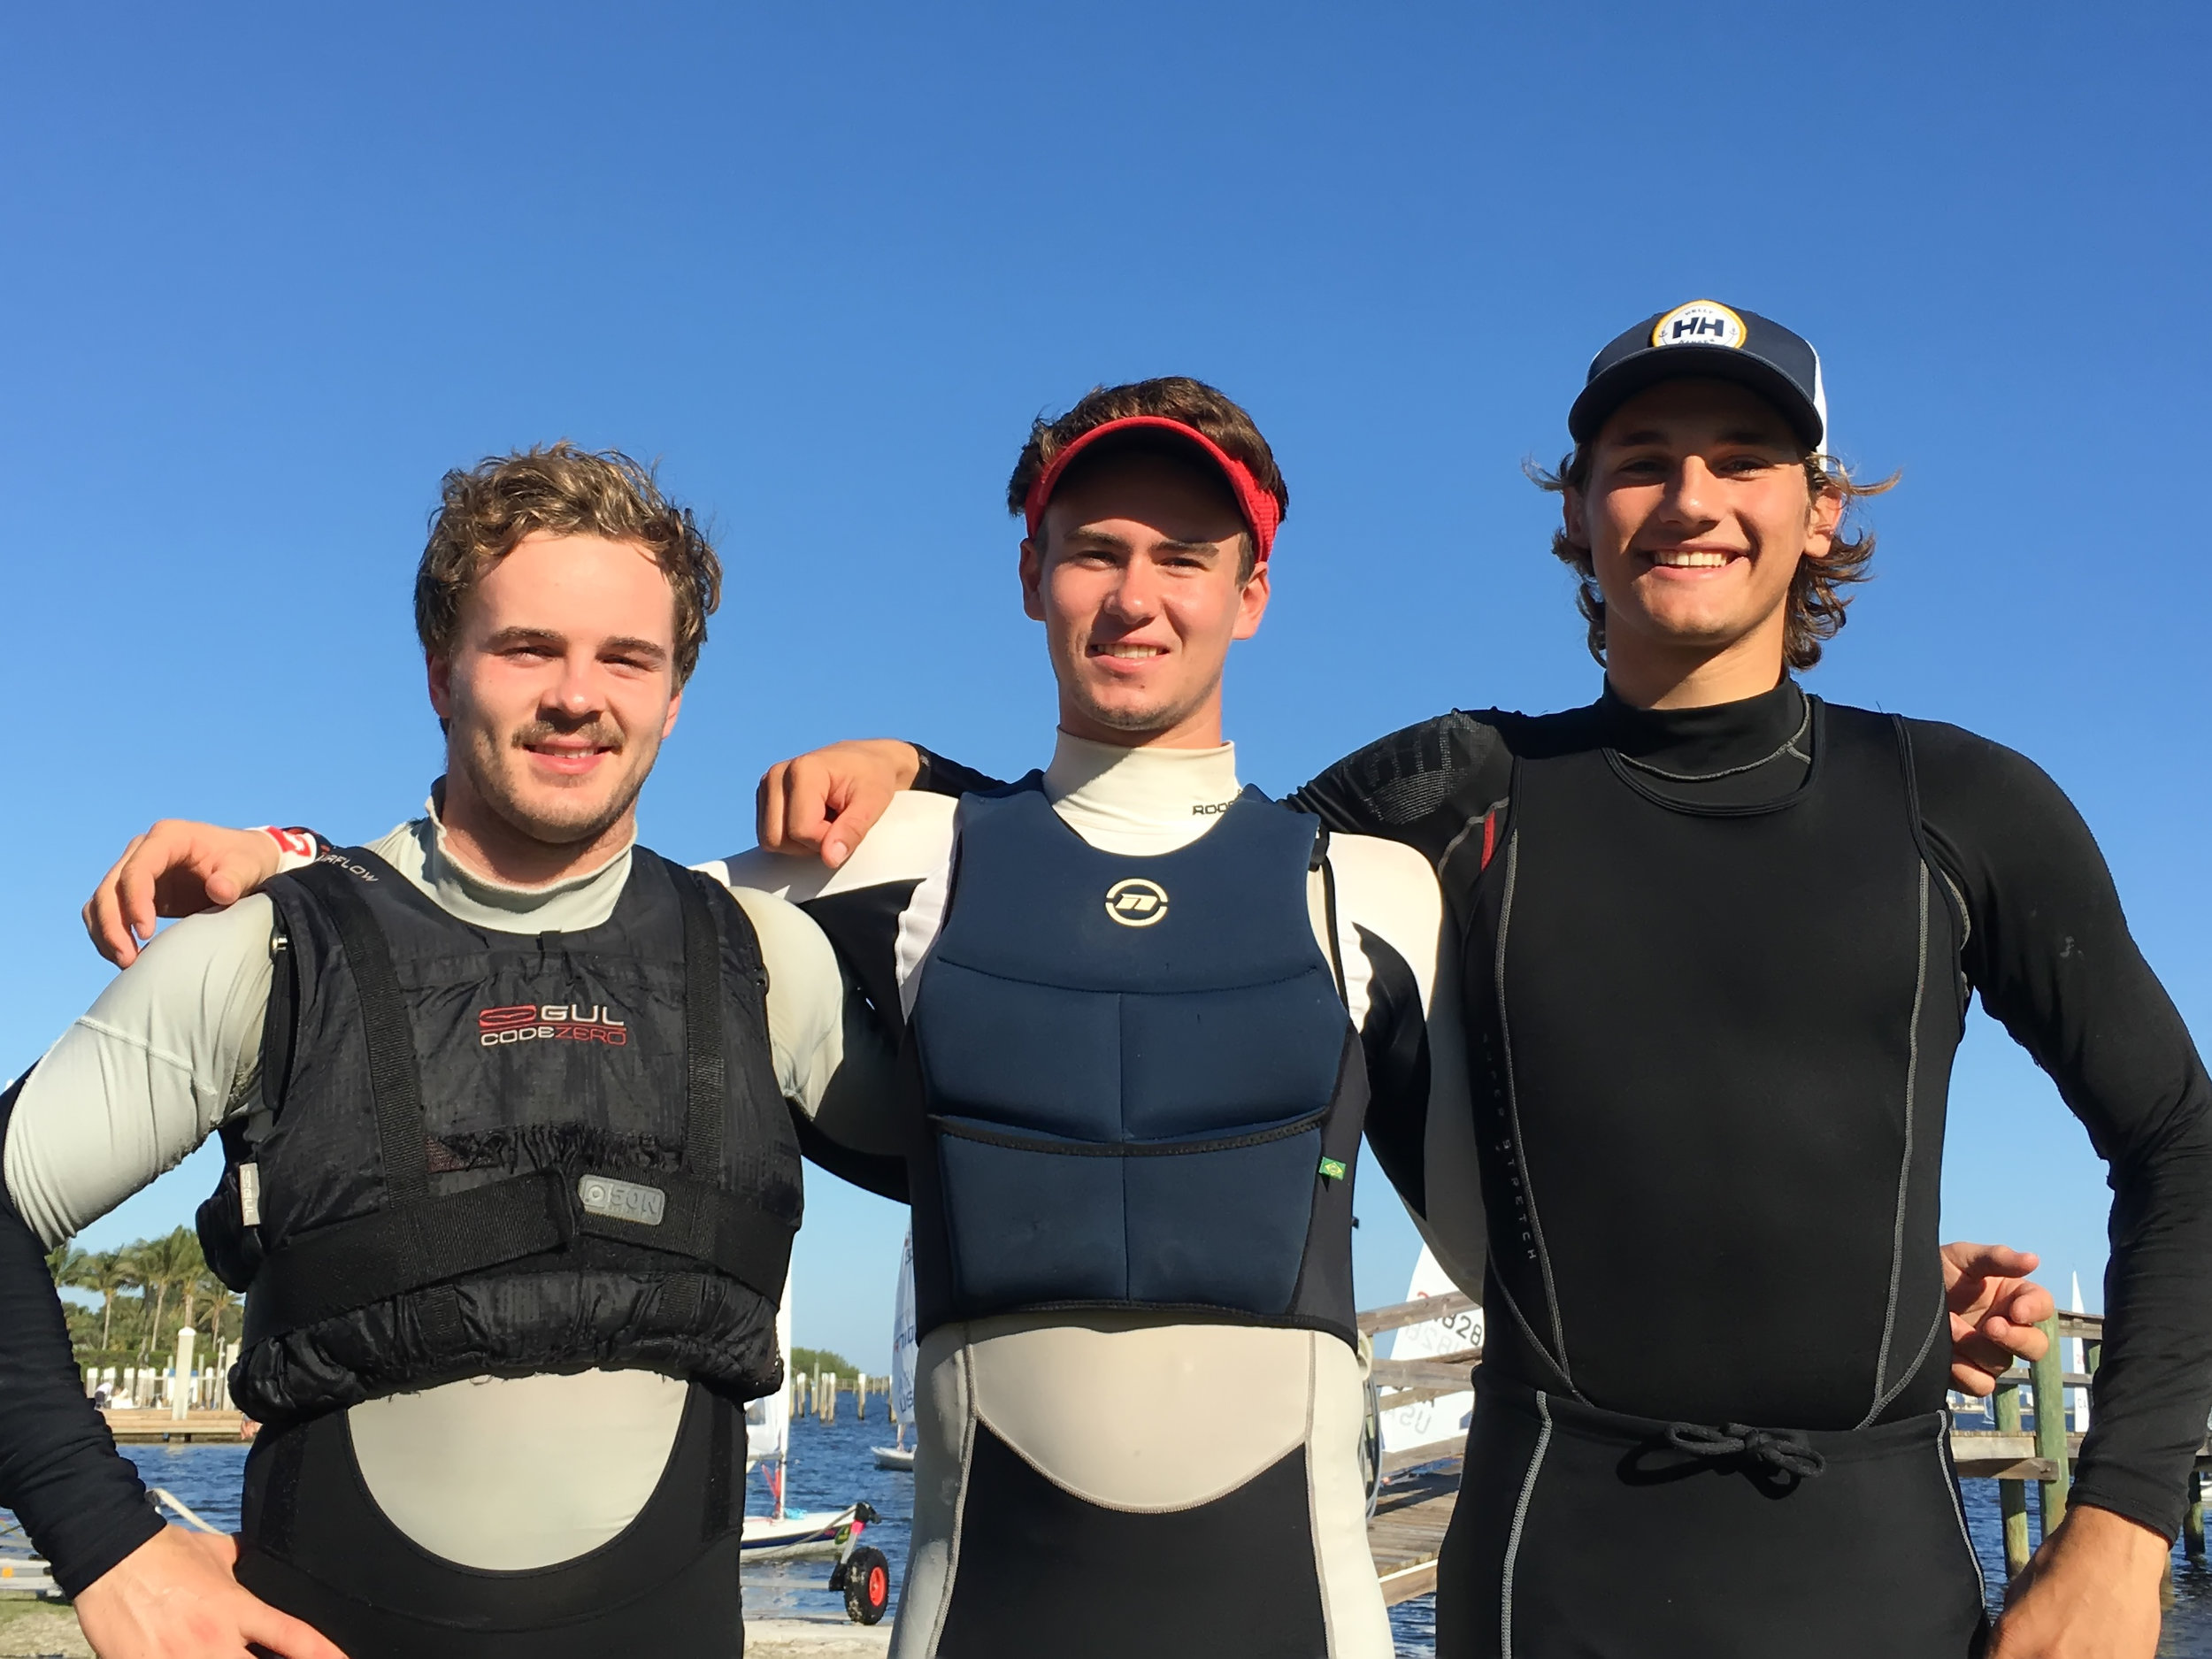 Just a few of the Ontario sailors! Matti Muru, Liam, James Juhasz